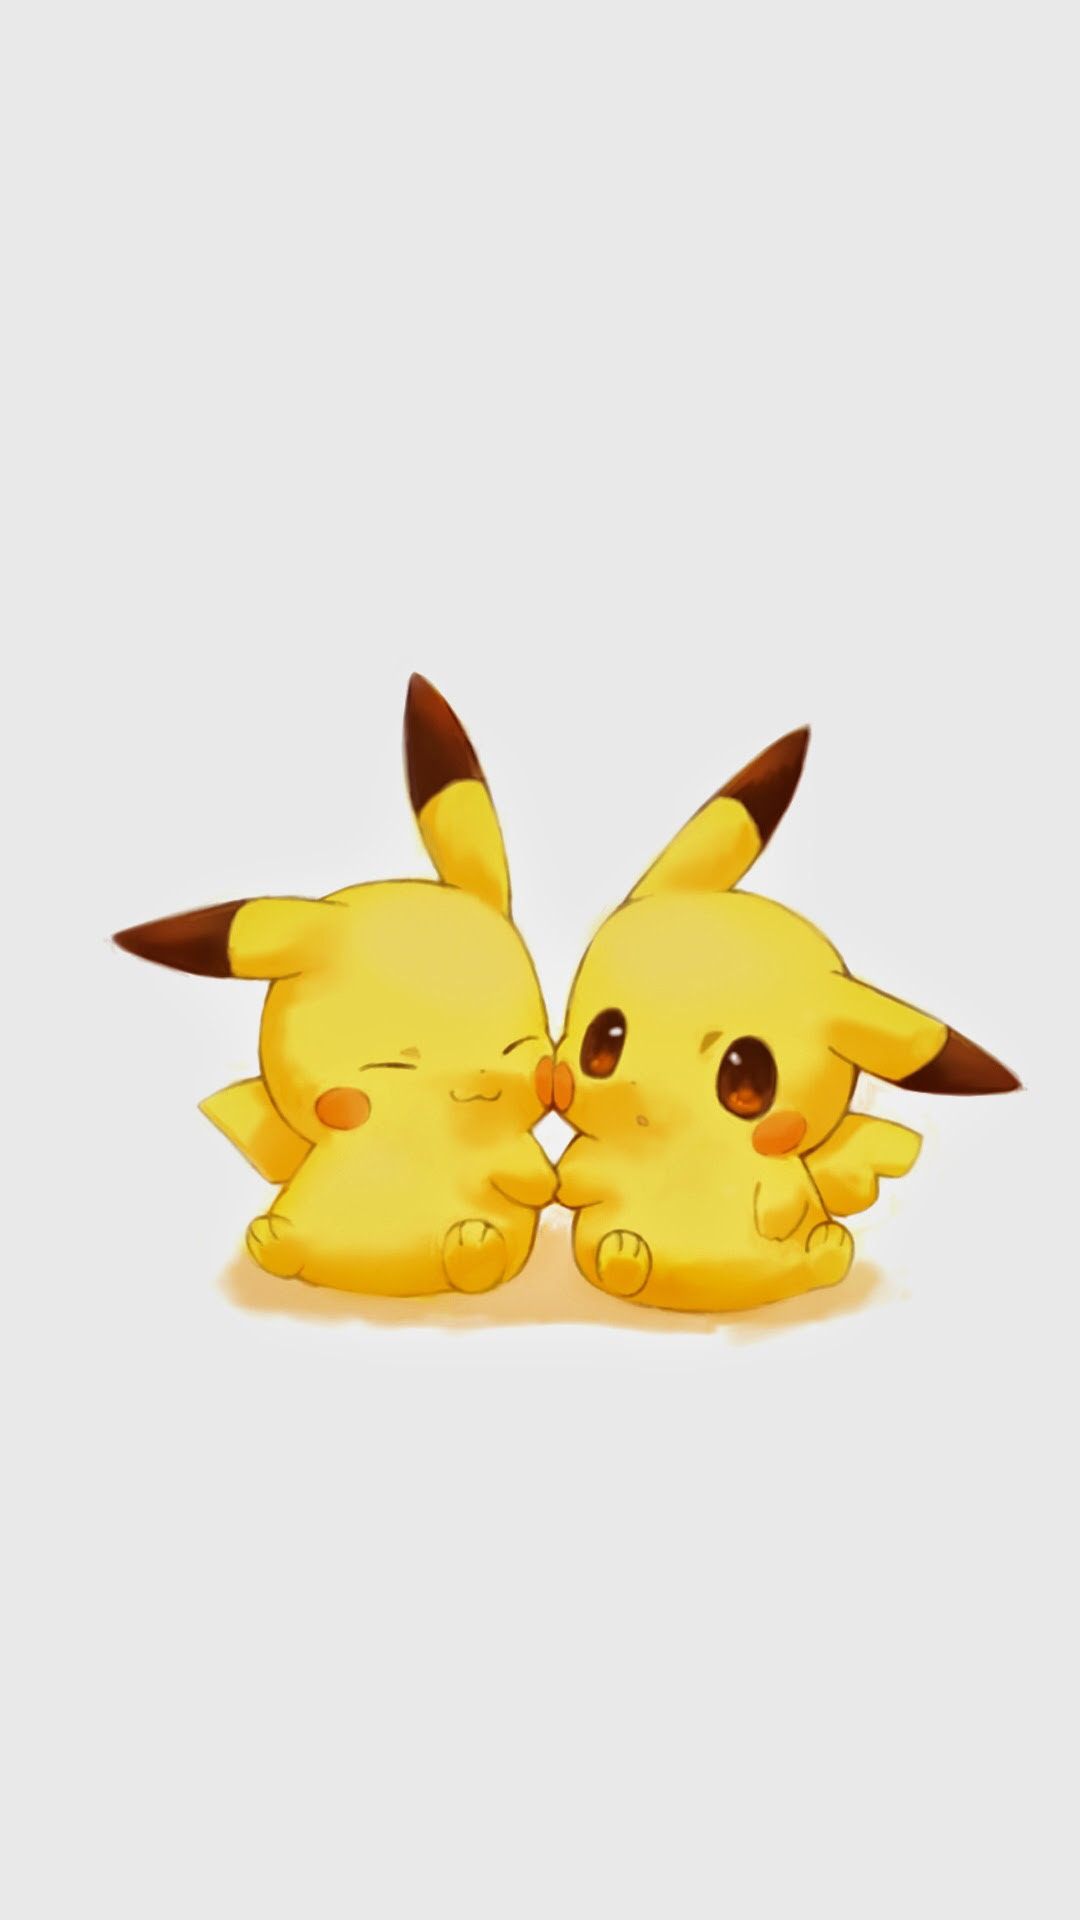 4K Pikachu Wallpapers High Quality | Download Free